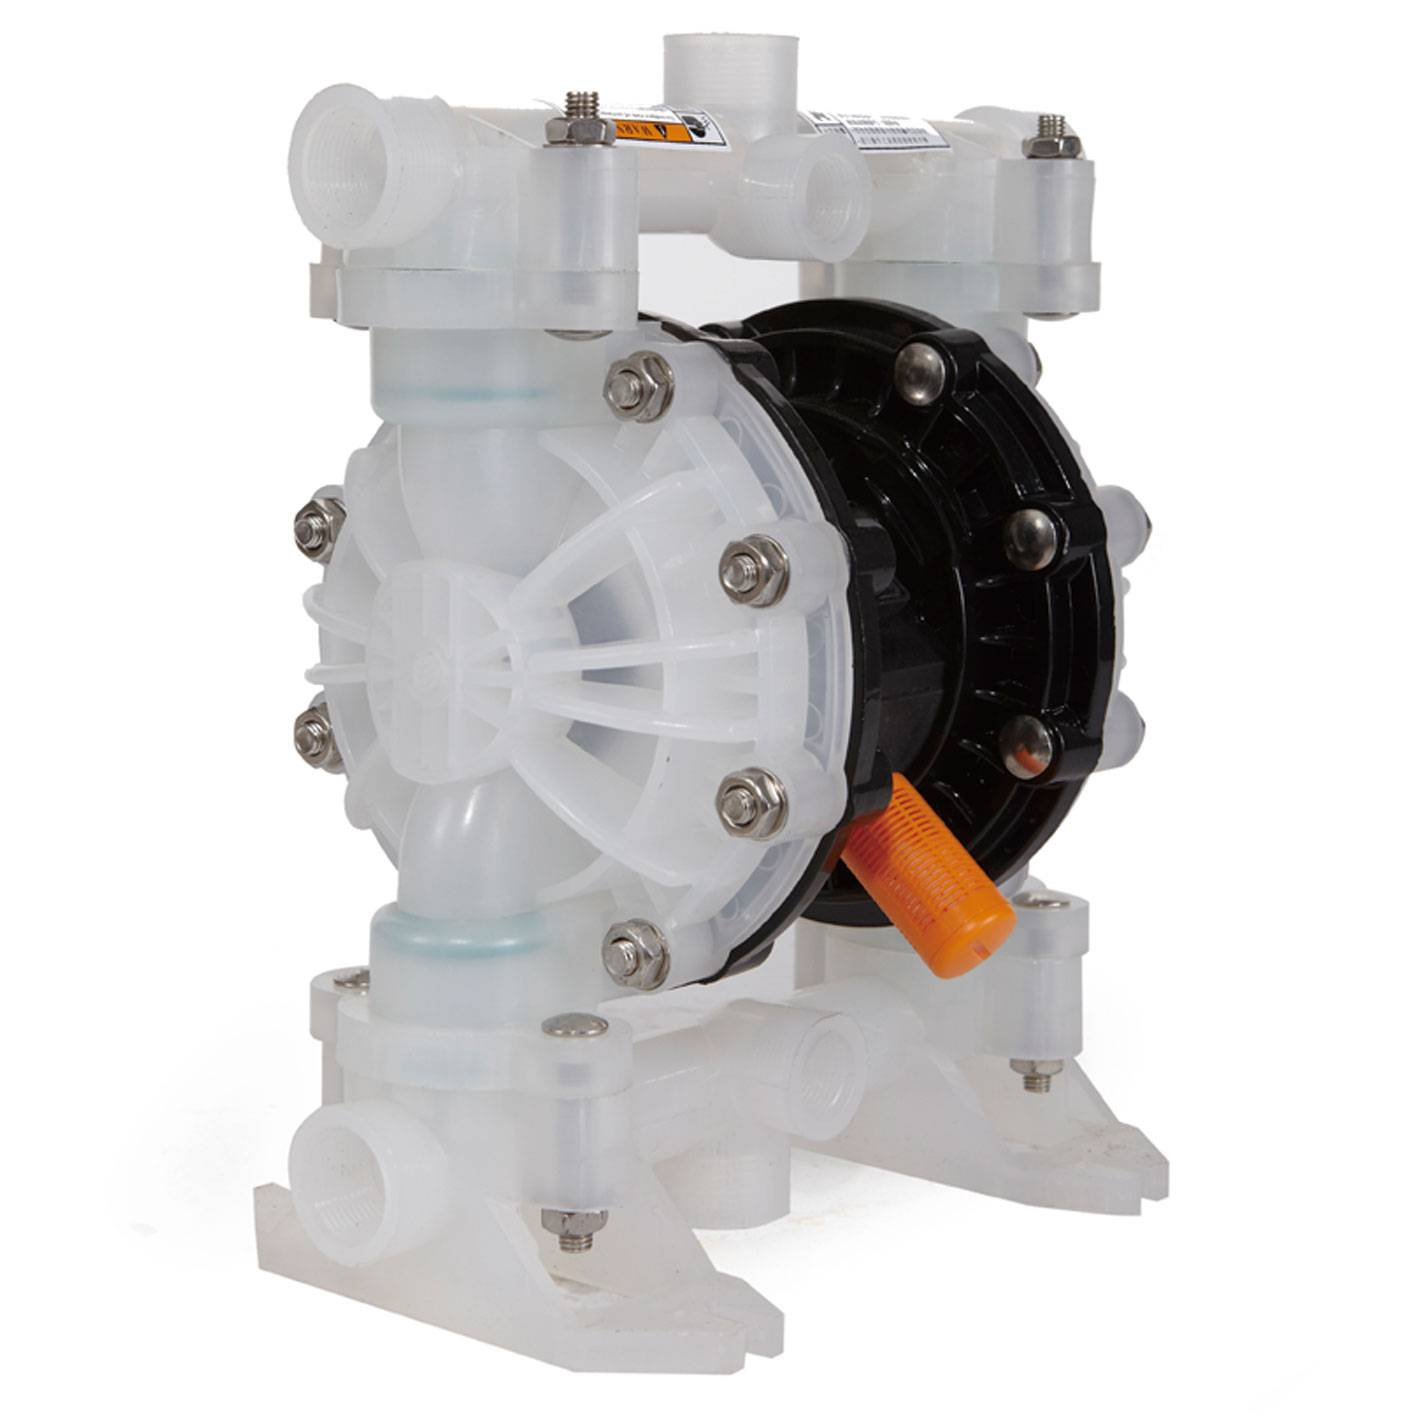 QBY3- 10/15 PTFE Air Operated Diaphragm Pump